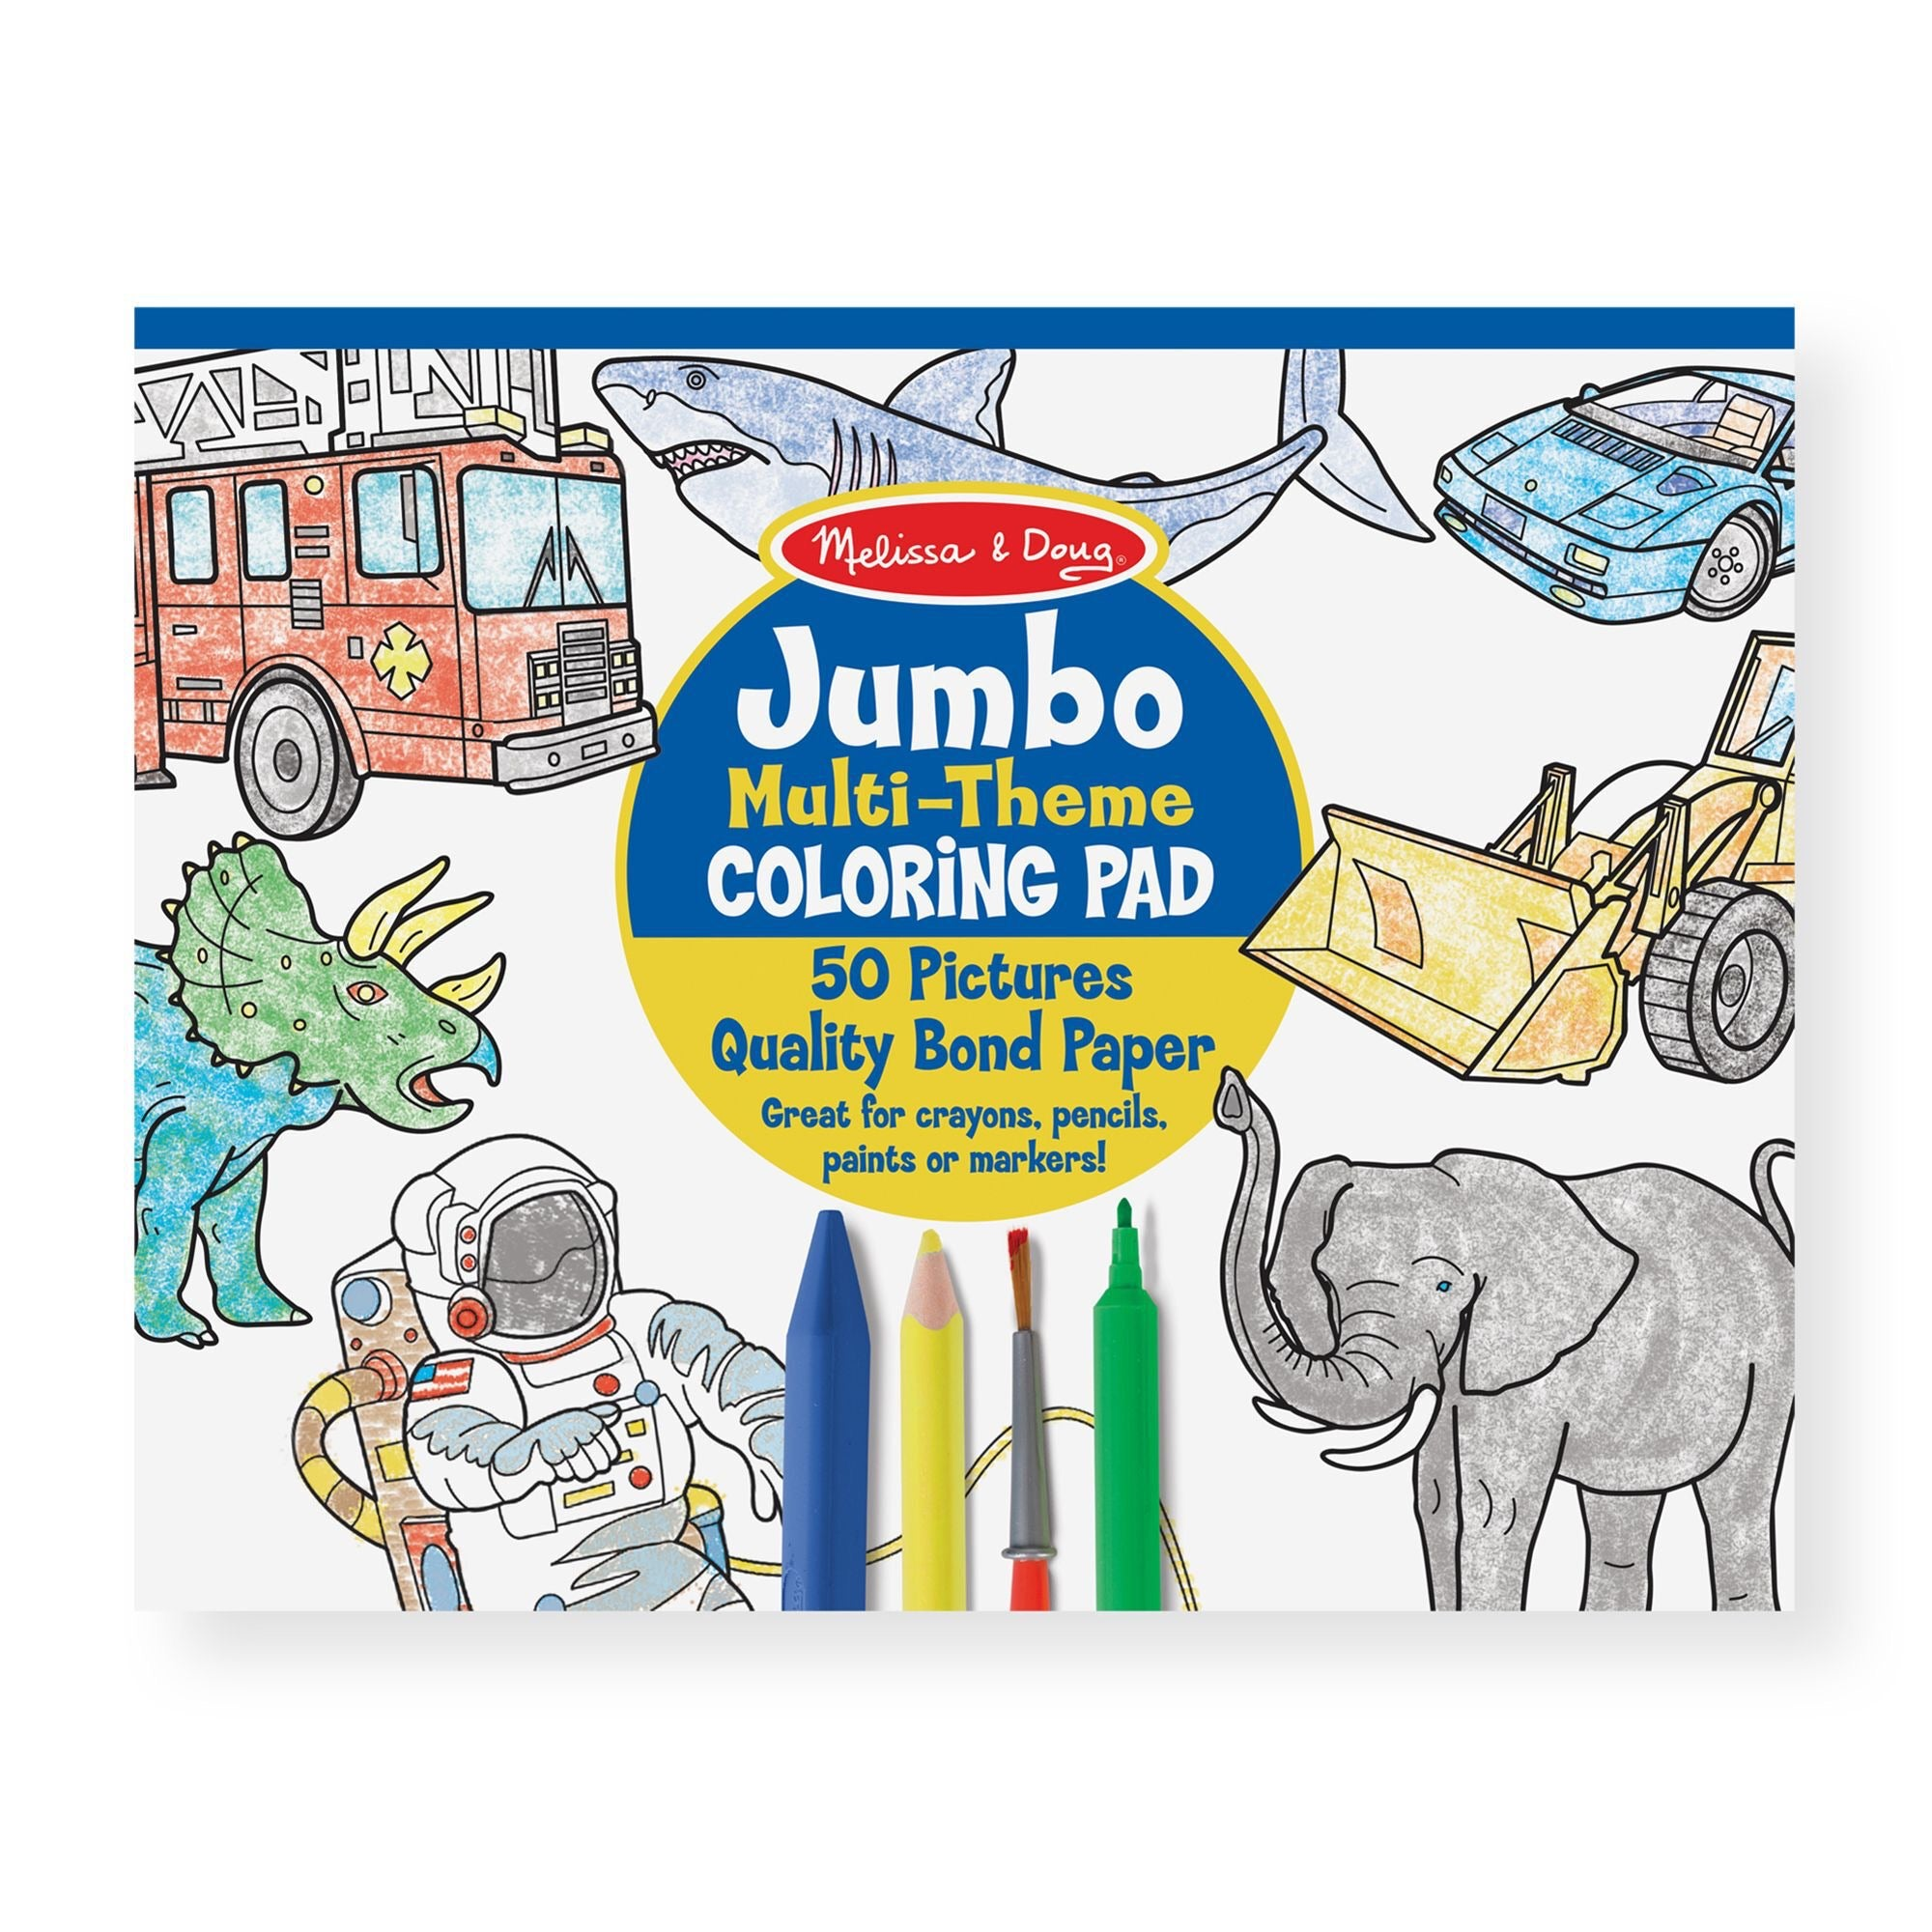 Jumbo Coloring Pad Multi-Theme by Melissa & Doug #4226